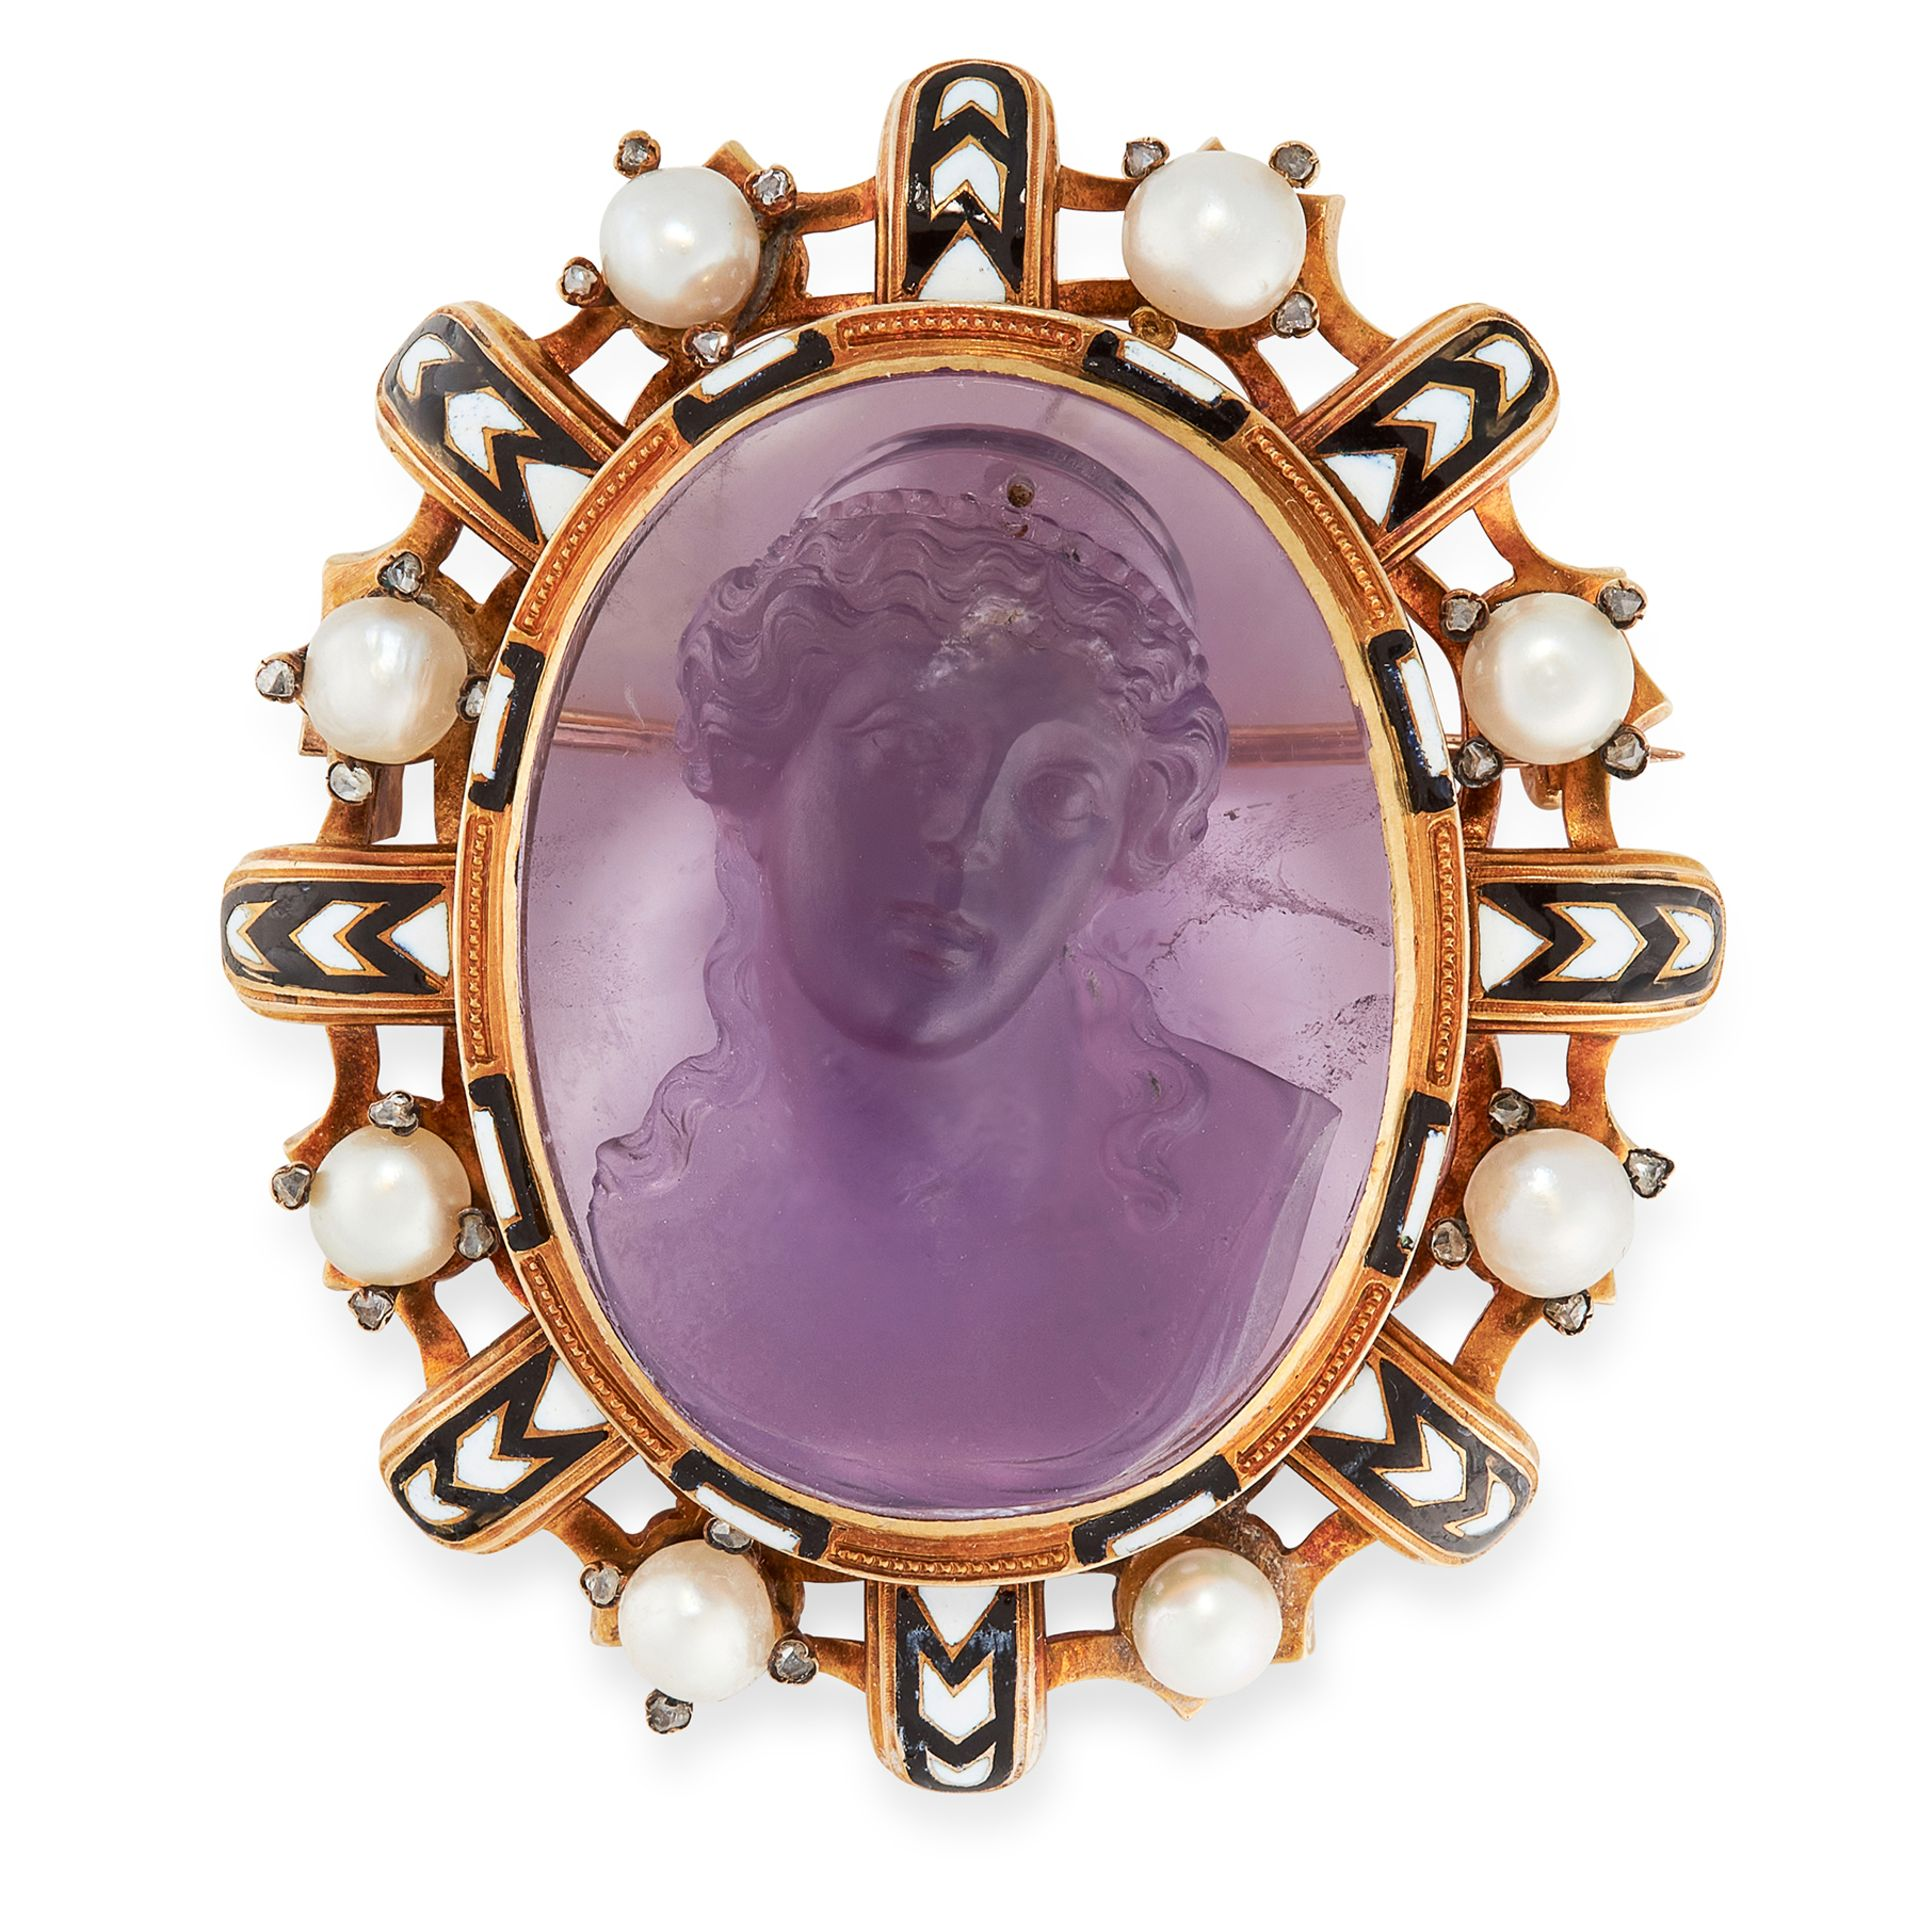 AN ANTIQUE AMETHYST CAMEO, DIAMOND, ENAMEL AND PEARL BROOCH, 19TH CENTURY in 18ct yellow gold, set